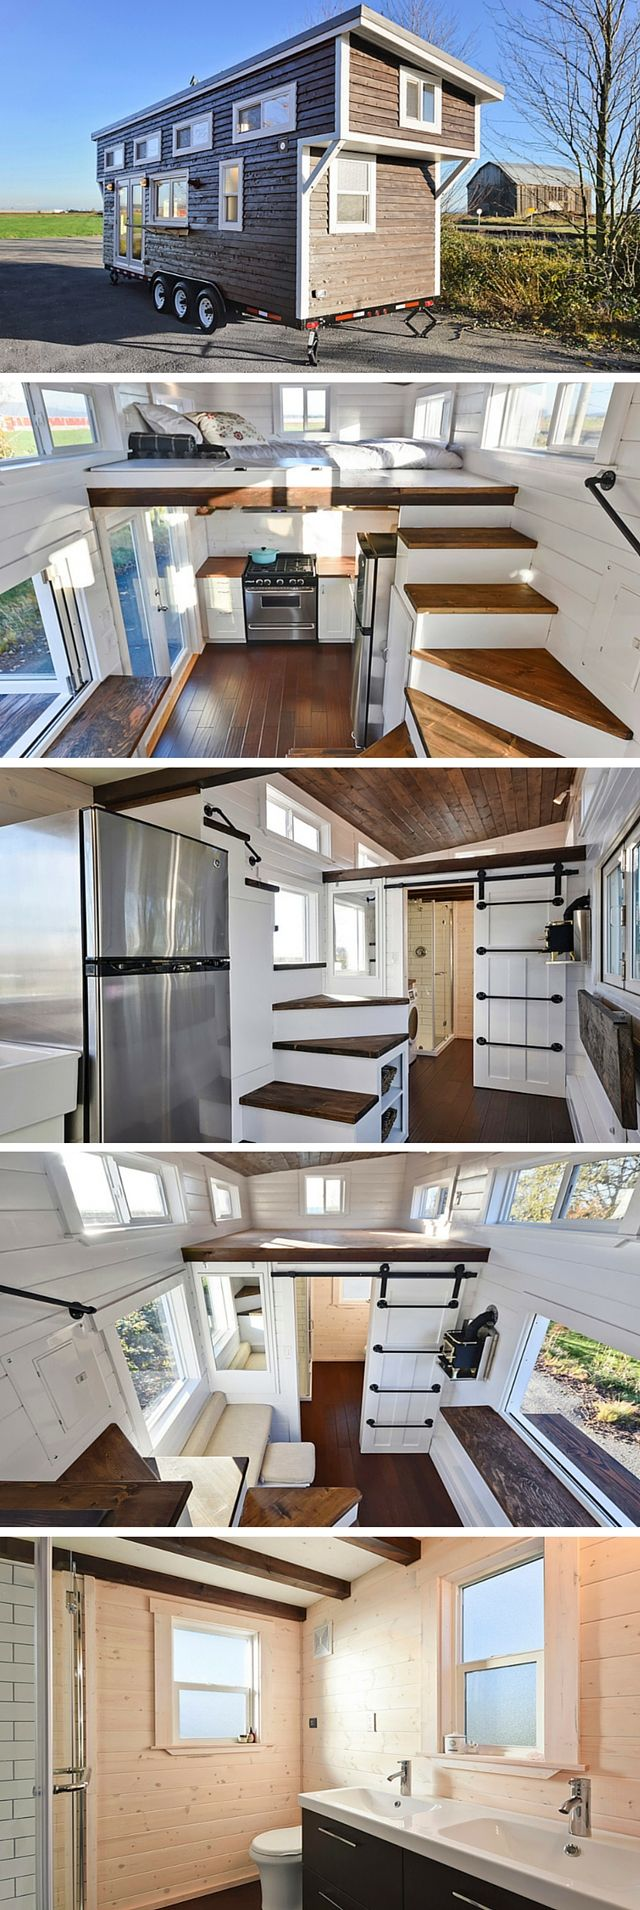 Donu0027t Think Iu0027d Do This But I Love How Much They Did And Such A Small Space  A Custom Tiny House By The Mint Tiny House Company